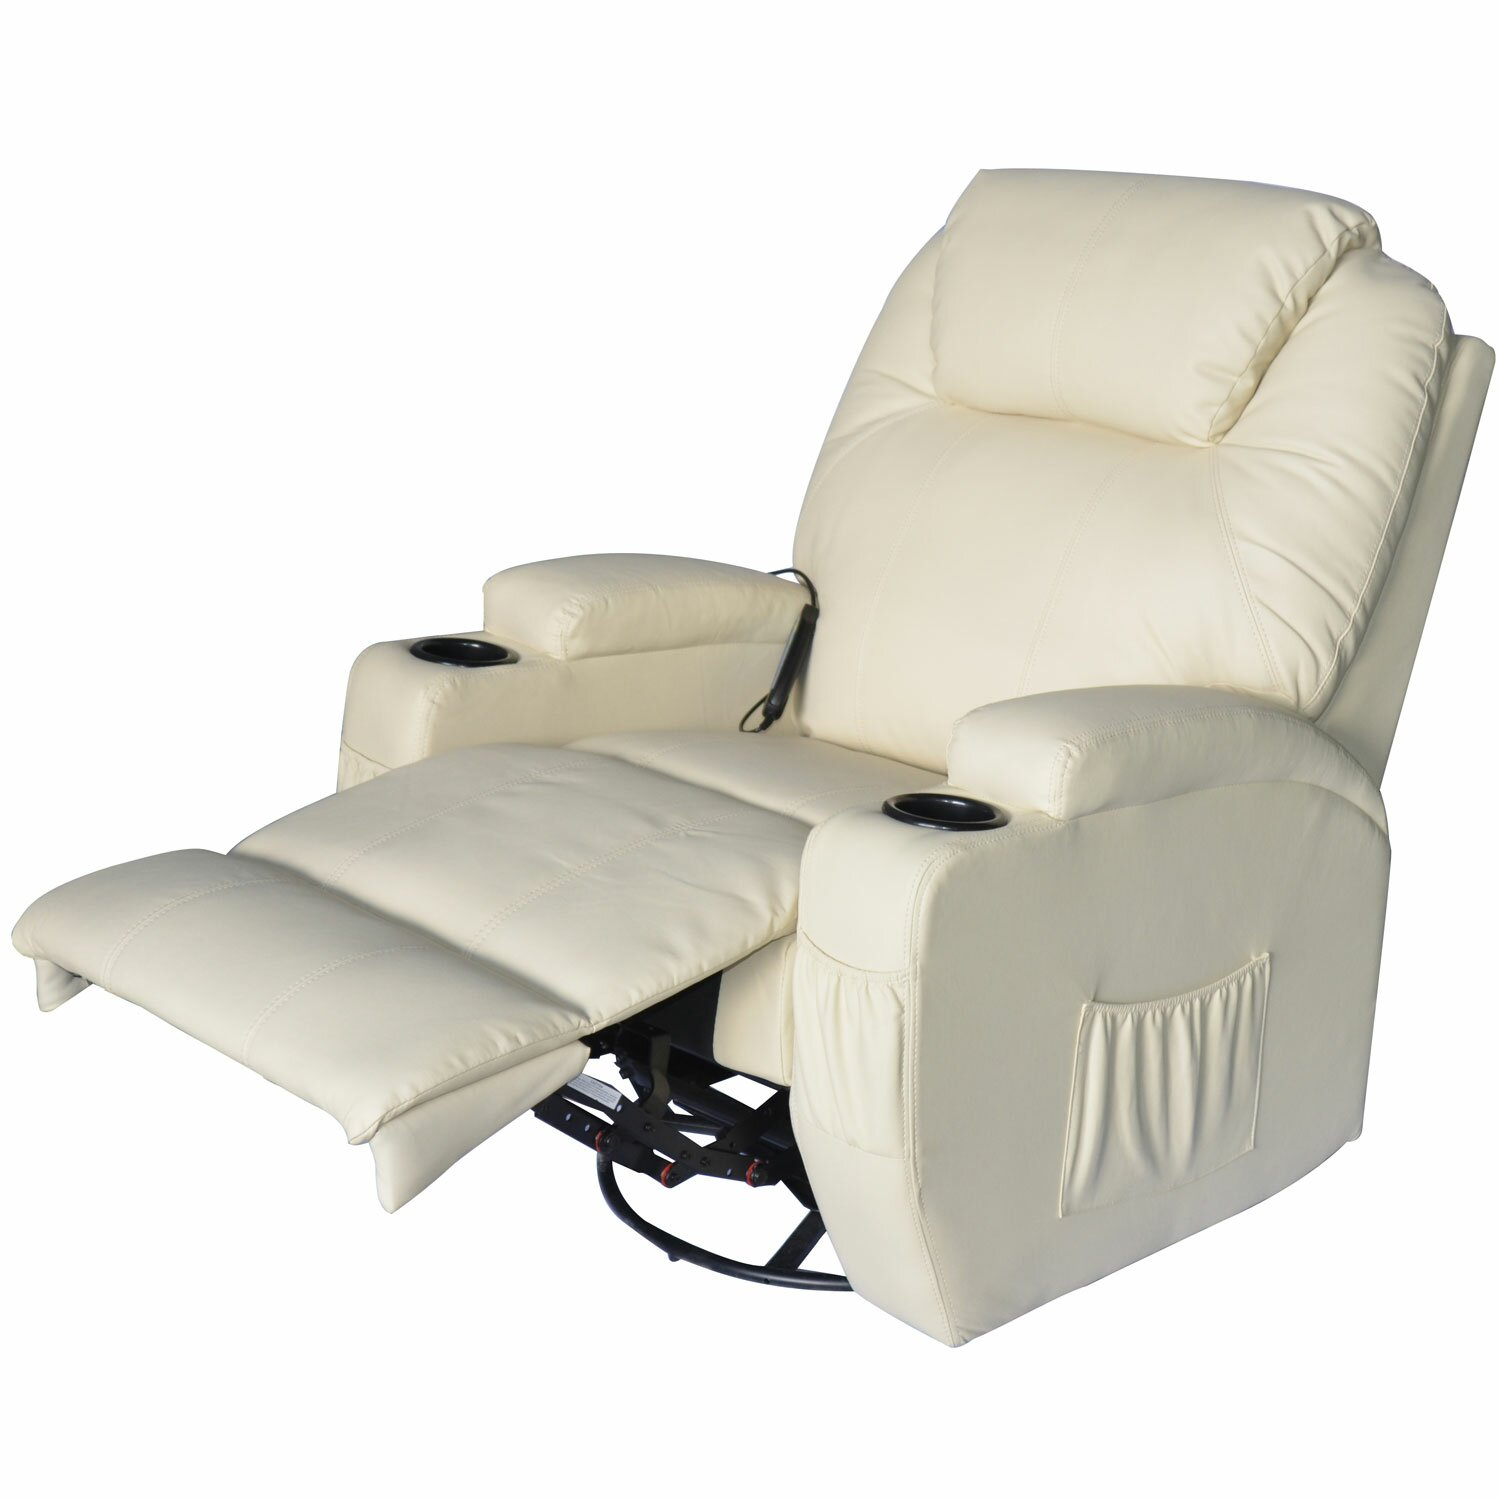 Outsunny Hom Deluxe Heated Vibrating PU Leather Massage Recliner & Reviews